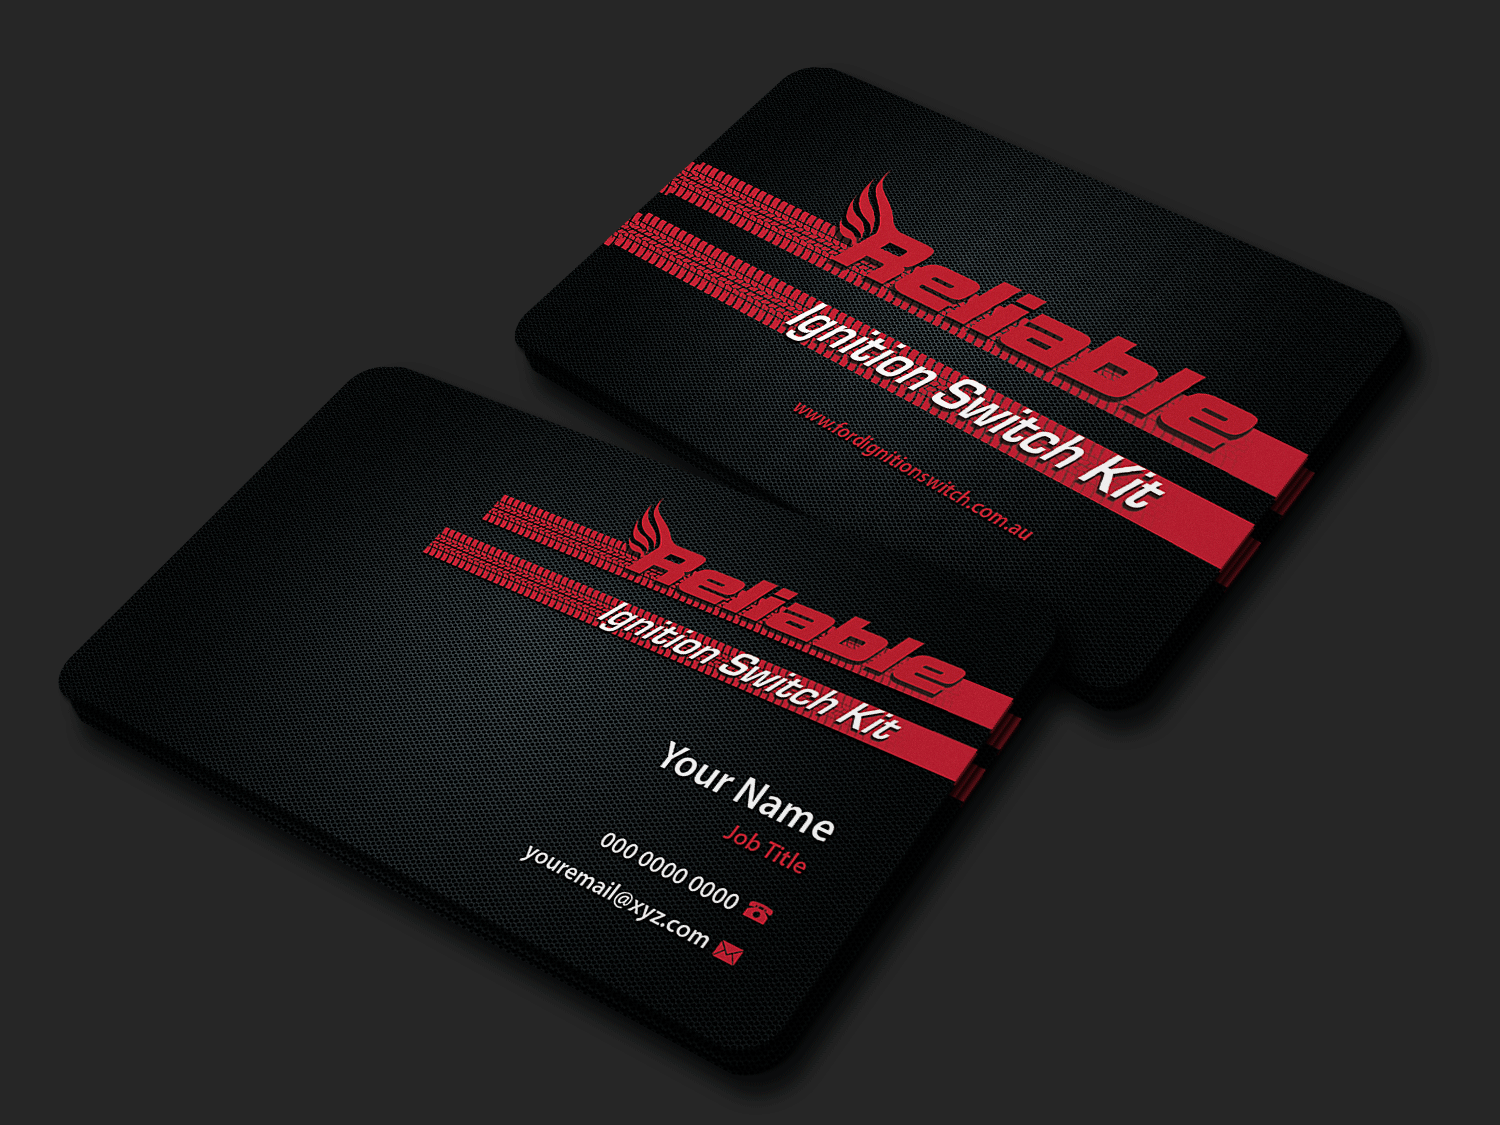 Modern Professional Automotive Part Business Card Design For Reliable Locksmiths By Riz Design 18642534